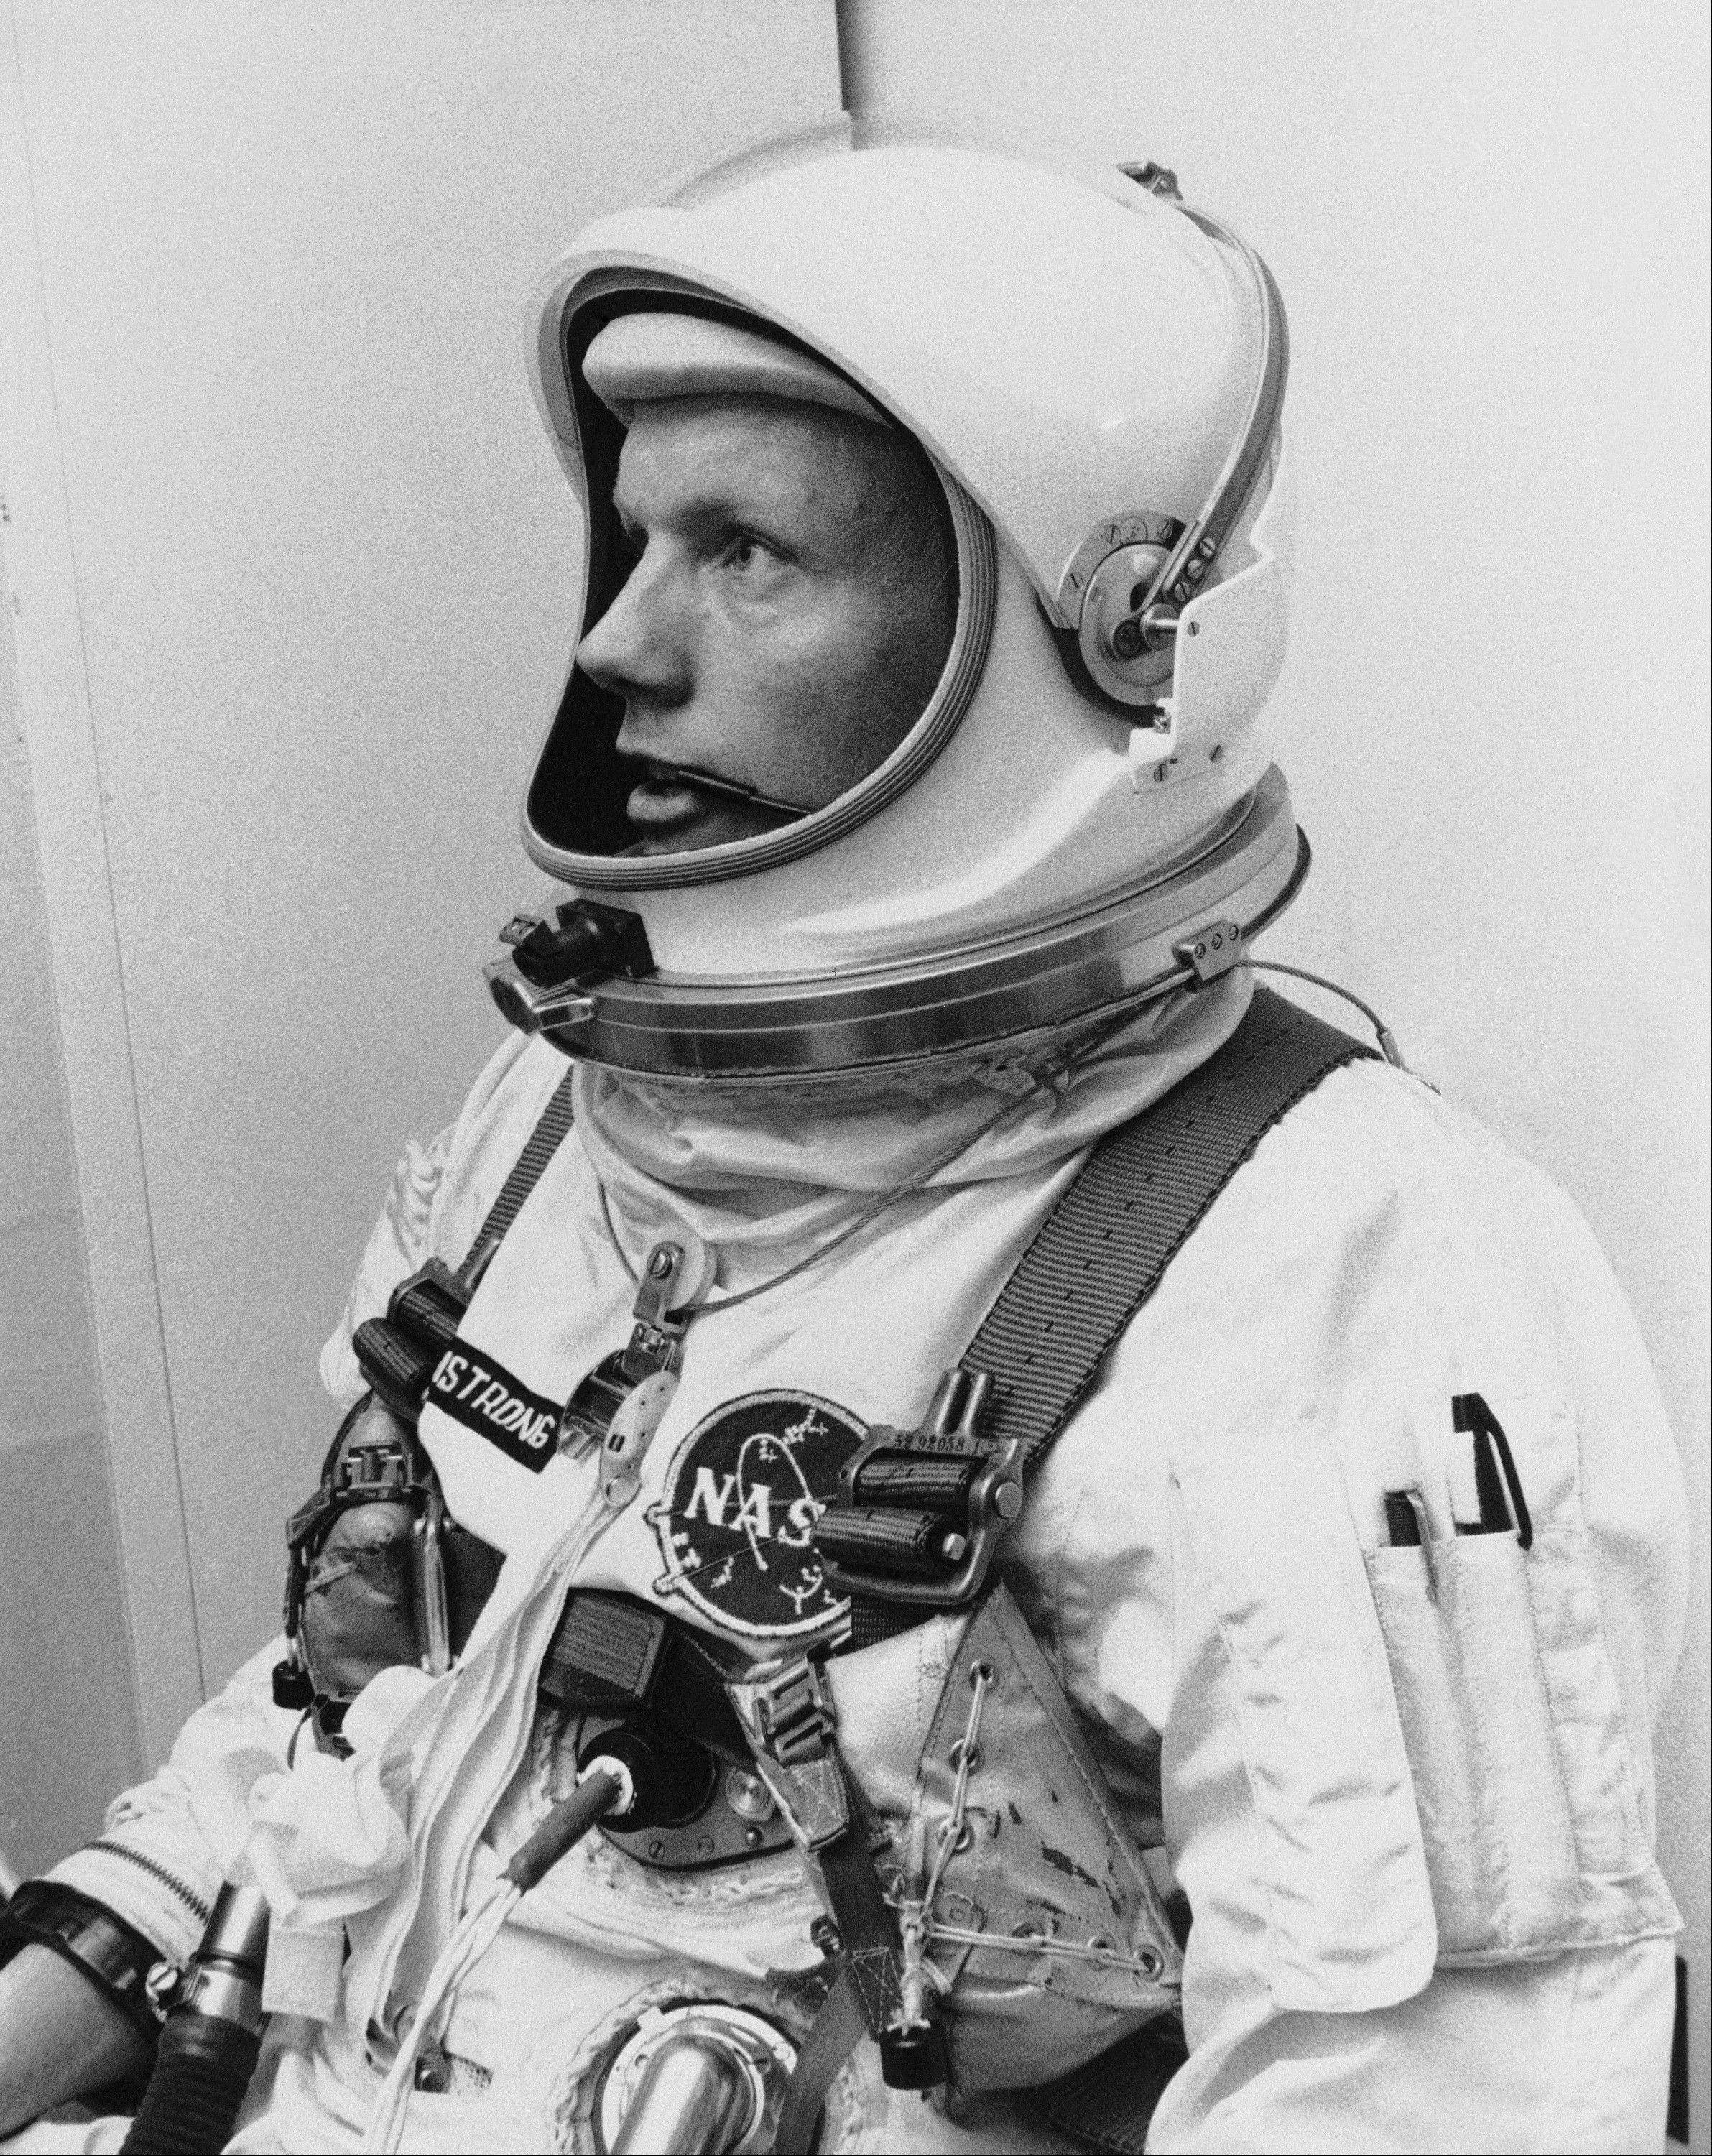 "In this March 6, 1966 file photo Astronaut Neil Armstrong, pilot for the Gemini VIII mission is shown. The family of Neil Armstrong, the first man to walk on the moon, says he has died at age 82. A statement from the family says he died following complications resulting from cardiovascular procedures. It doesn't say where he died. Armstrong commanded the Apollo 11 spacecraft that landed on the moon July 20, 1969. He radioed back to Earth the historic news of ""one giant leap for mankind."" Armstrong and fellow astronaut Edwin ""Buzz"" Aldrin spent nearly three hours walking on the moon, collecting samples, conducting experiments and taking photographs. In all, 12 Americans walked on the moon from 1969 to 1972."